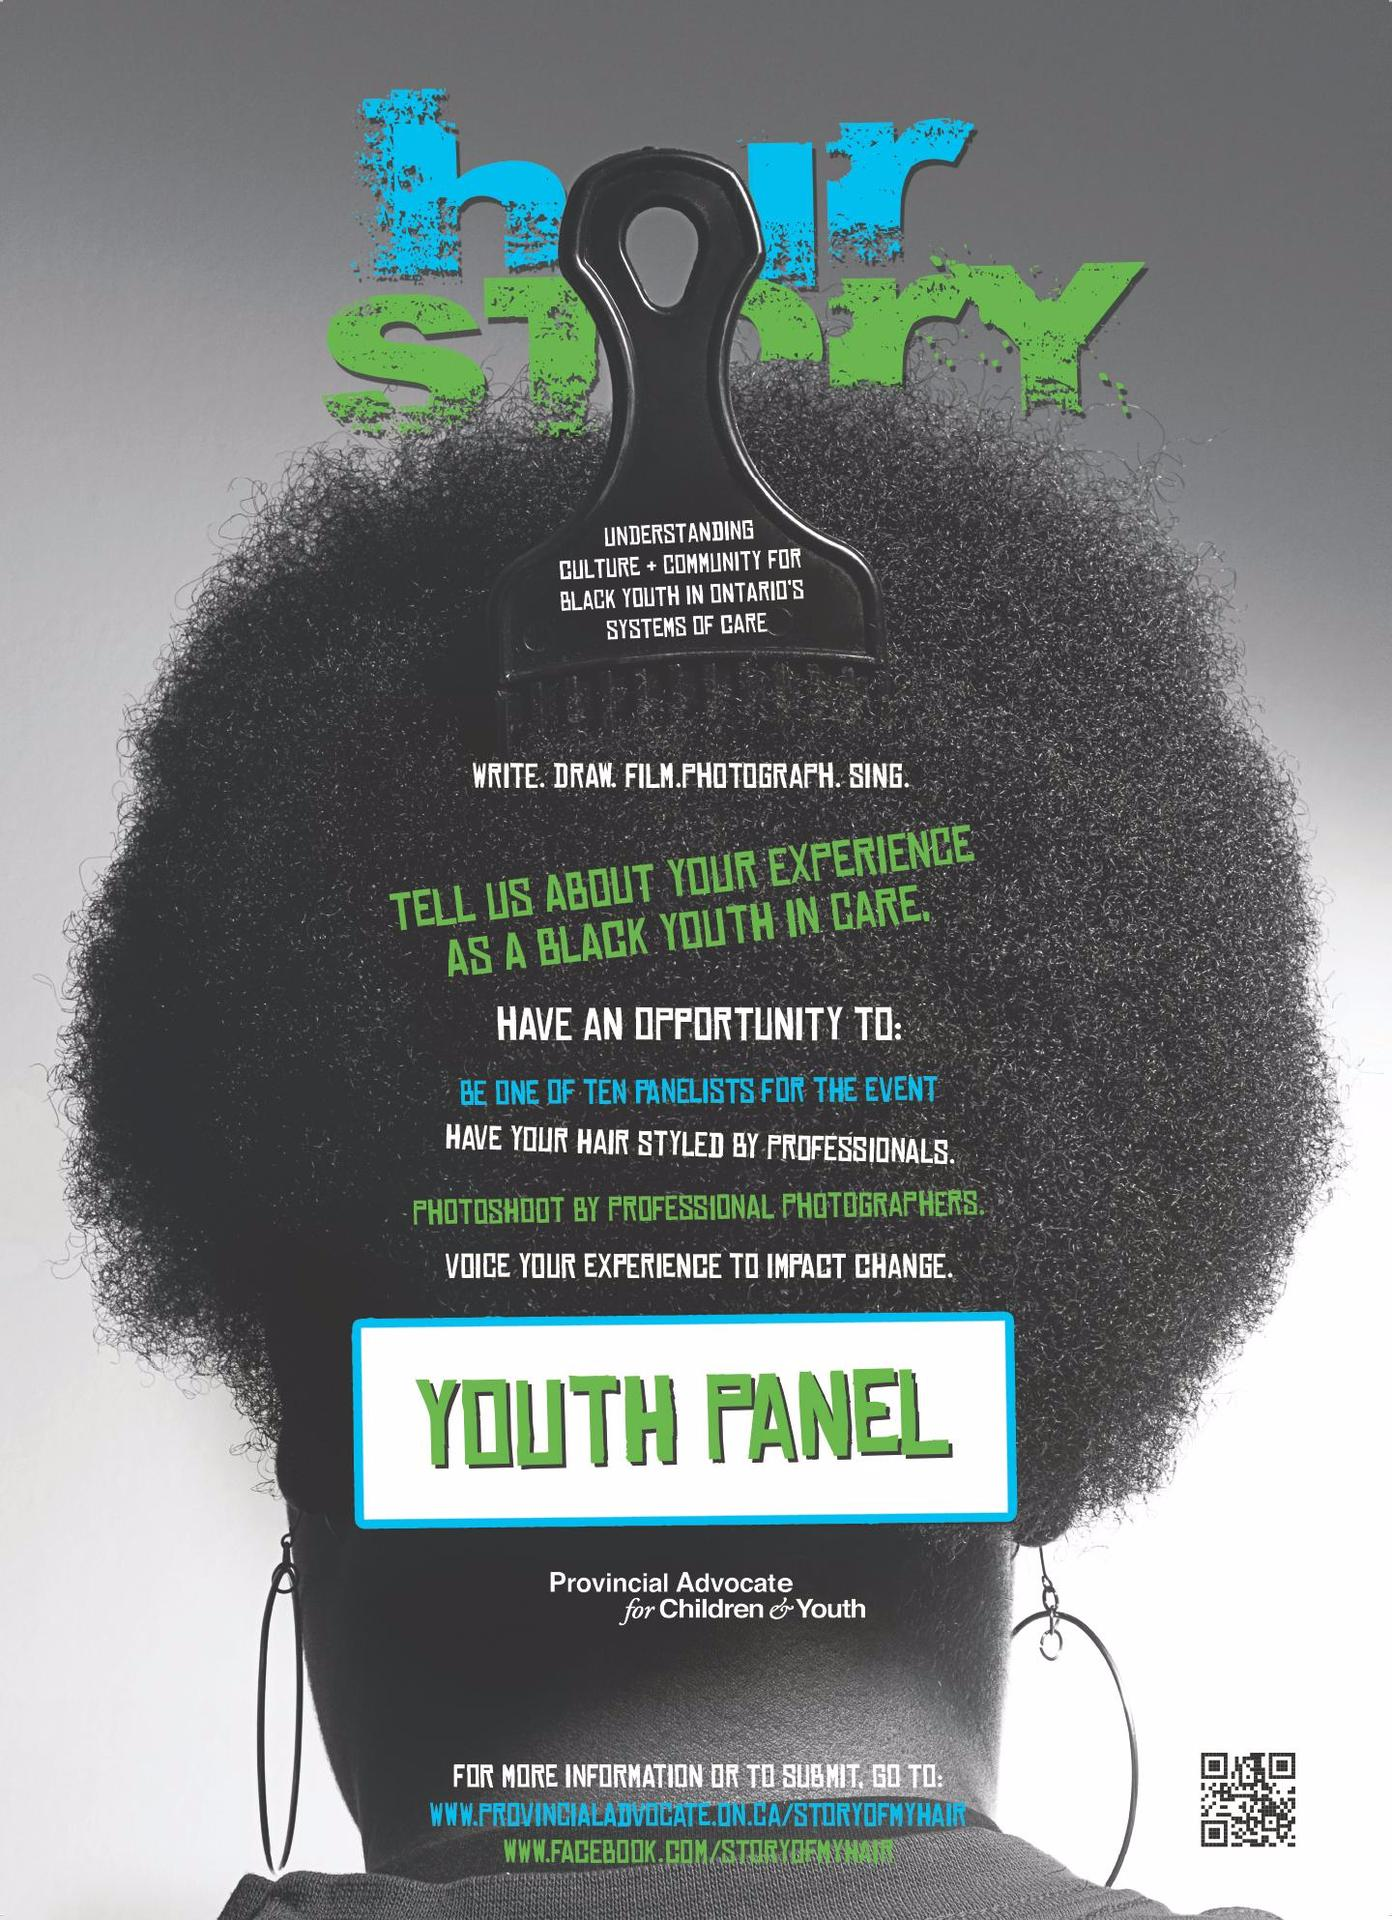 HairStory Youth Panel - On October 2012 - HairStory brought together 10 young people from across the Province of Ontario and having experiences from various parts of the care system to sit on a youth panel, held in Toronto. The young people would speak to an audience of community organizations, Black community leaders, and policy-makers within the provincial government about their experiences with the various care systems in Ontario.The young people gathered in Toronto over one weekend in October.